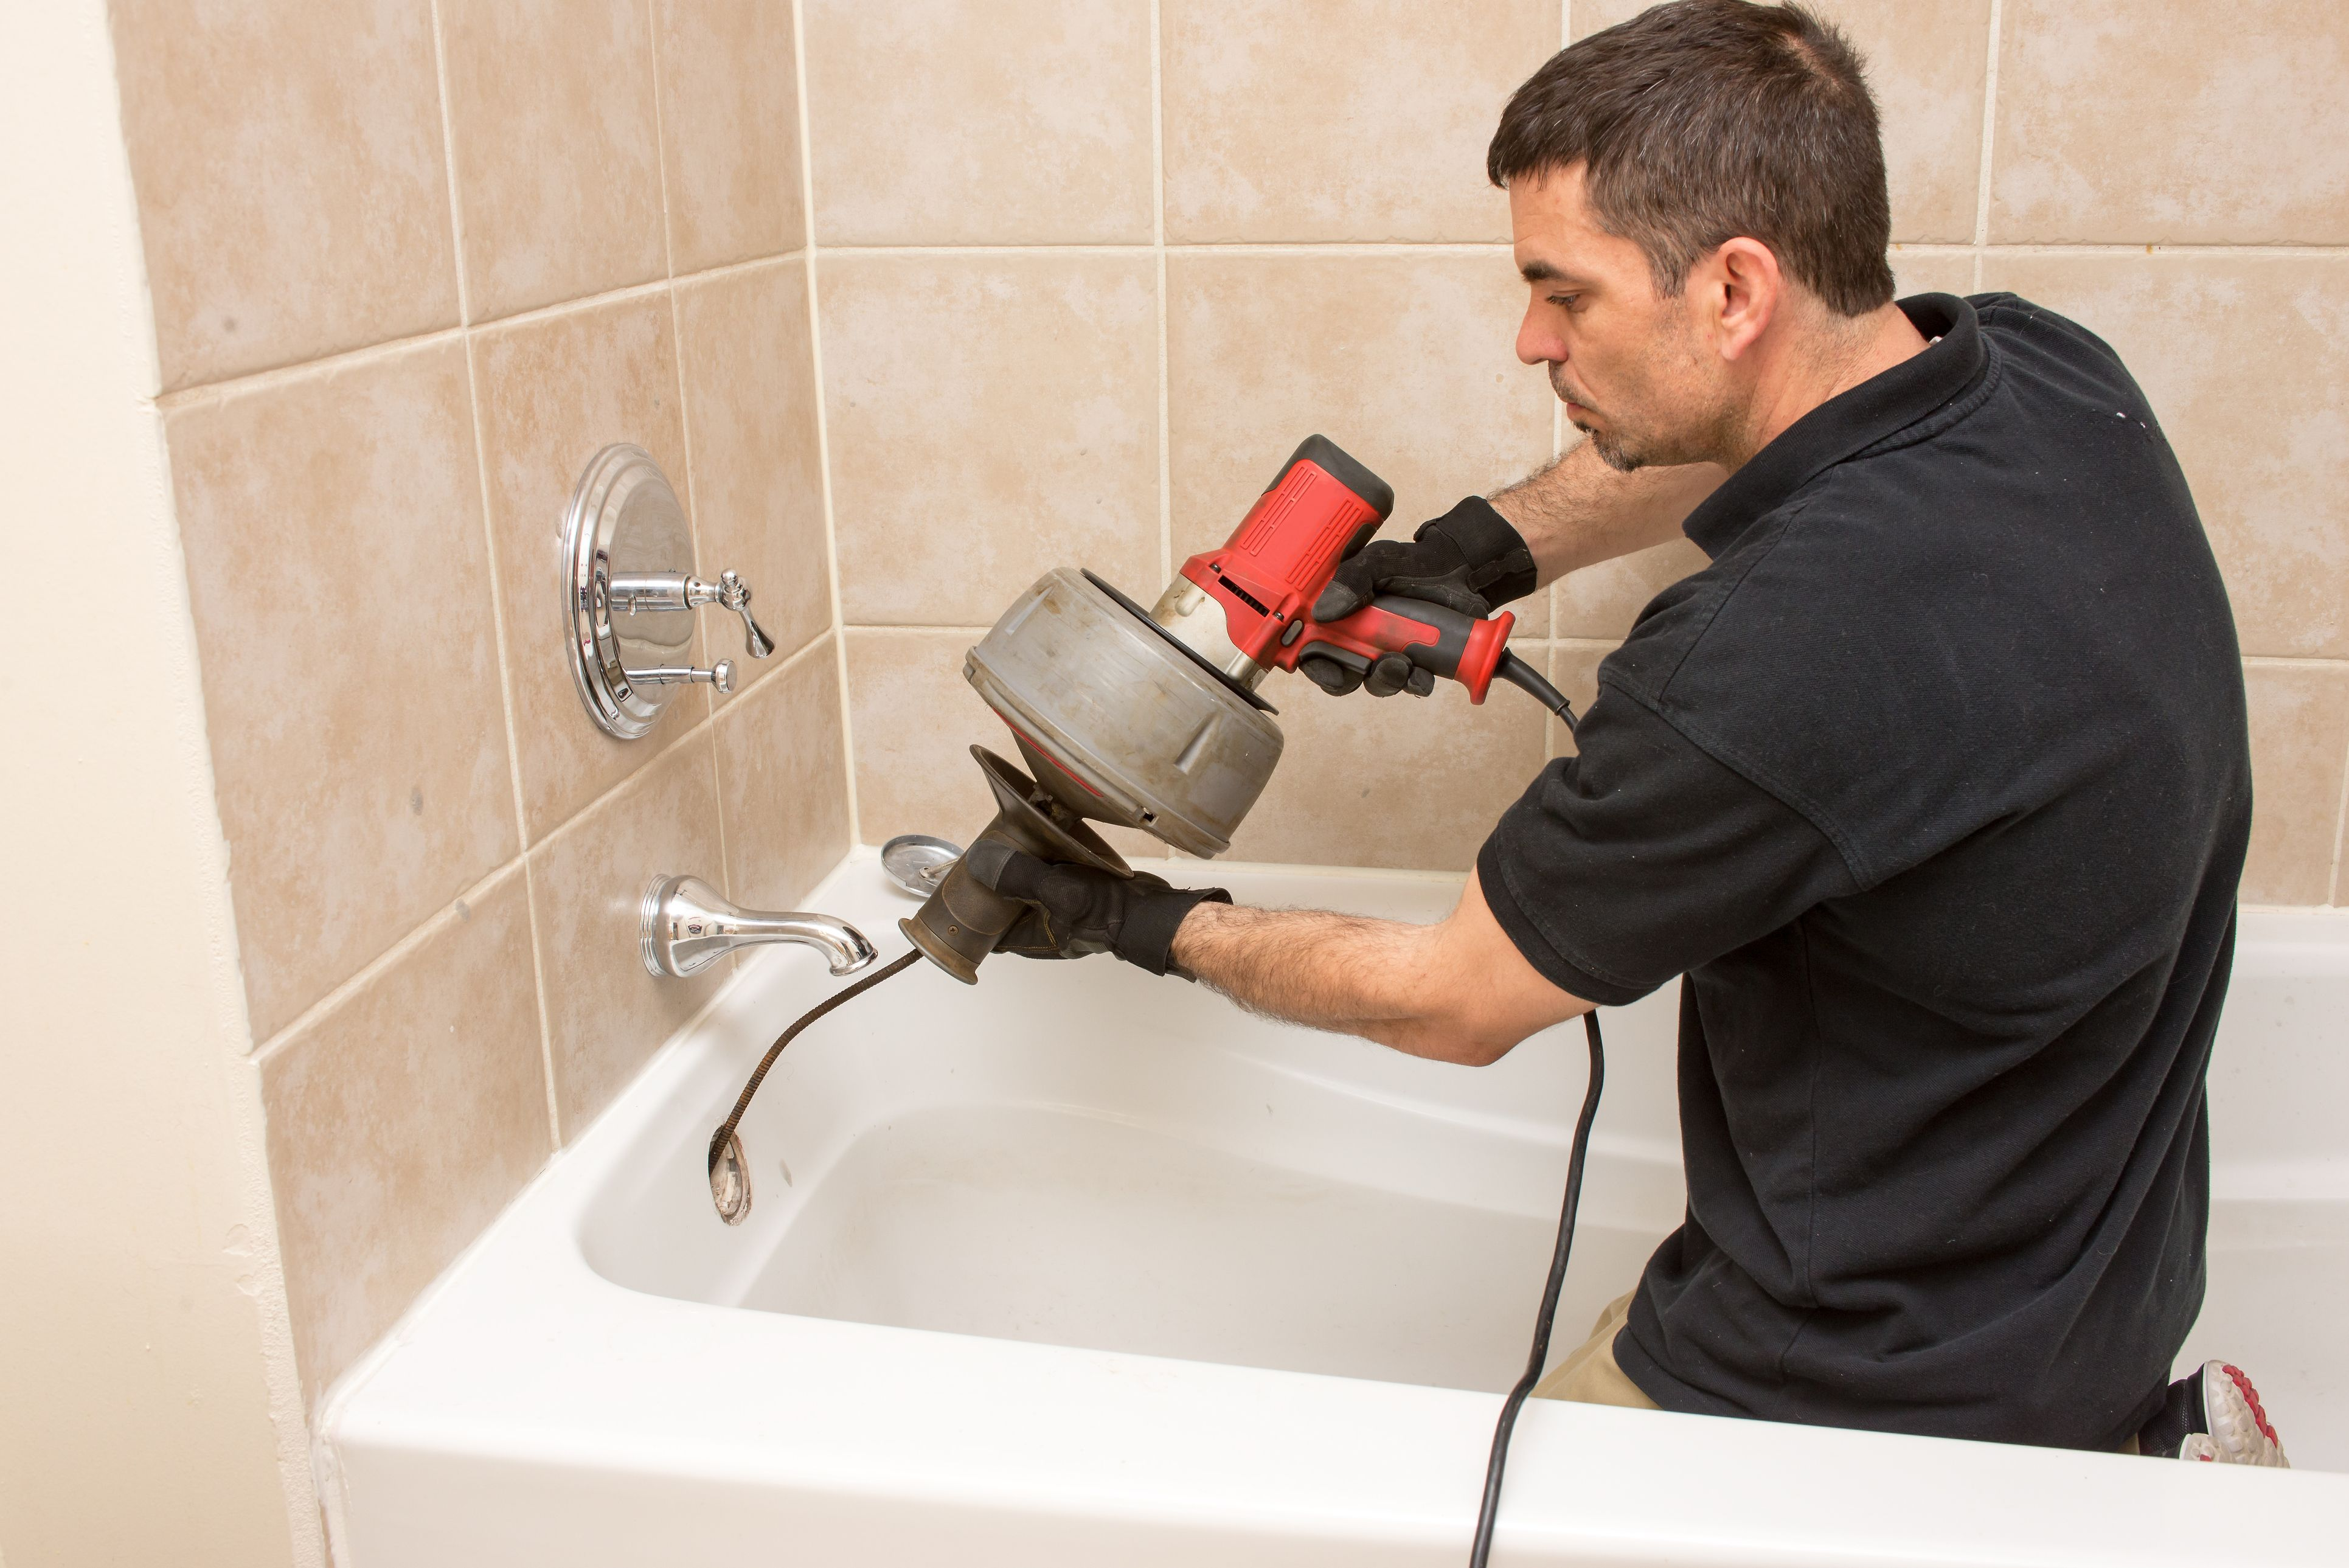 3 Common Reasons For Clogged Drains Drain Cleaner Plumbing Clogged Drain [ jpg ]